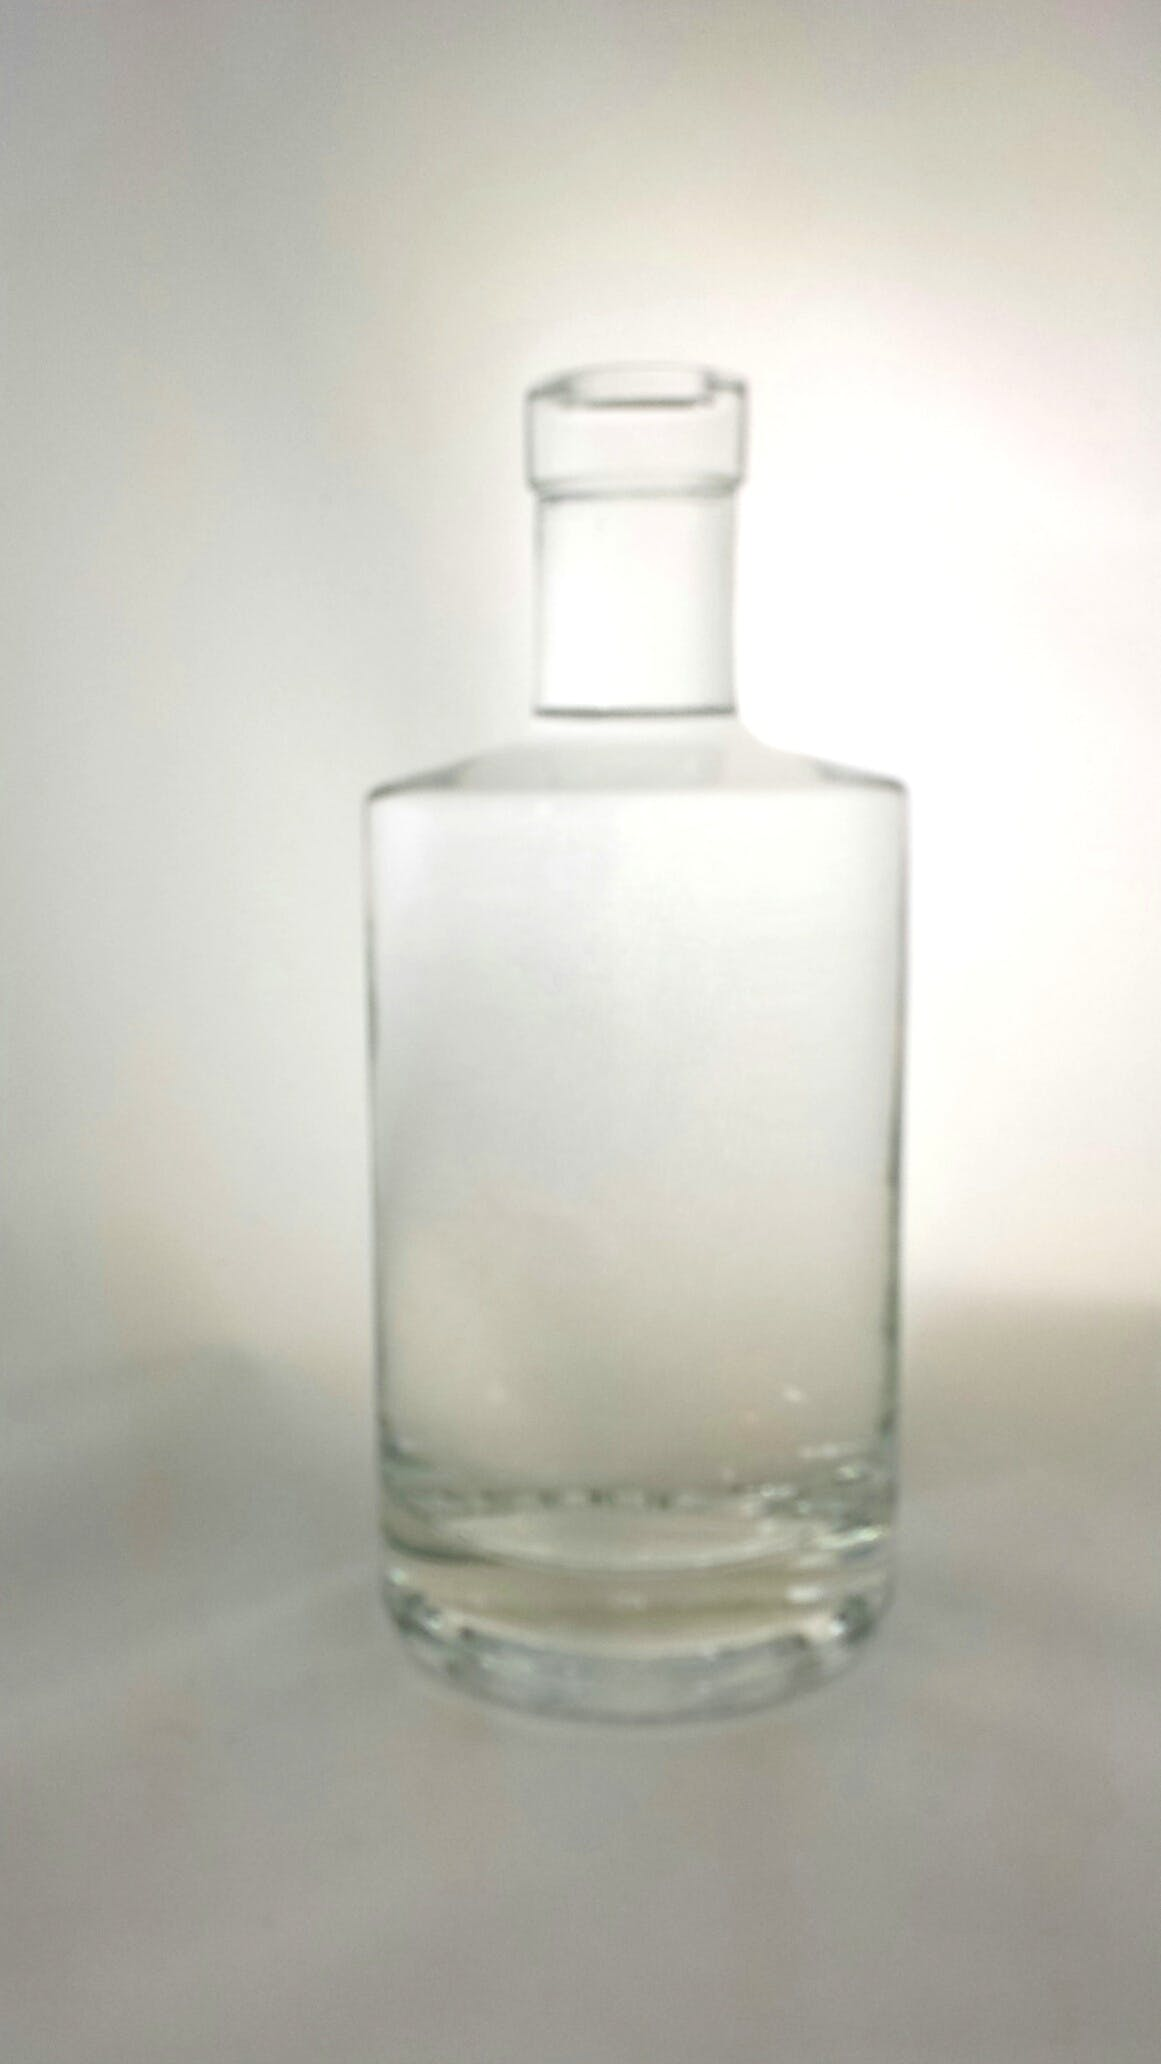 375ml Jersey Round Bar Top Liquor bottle sold by Wm. R. Hill & Company